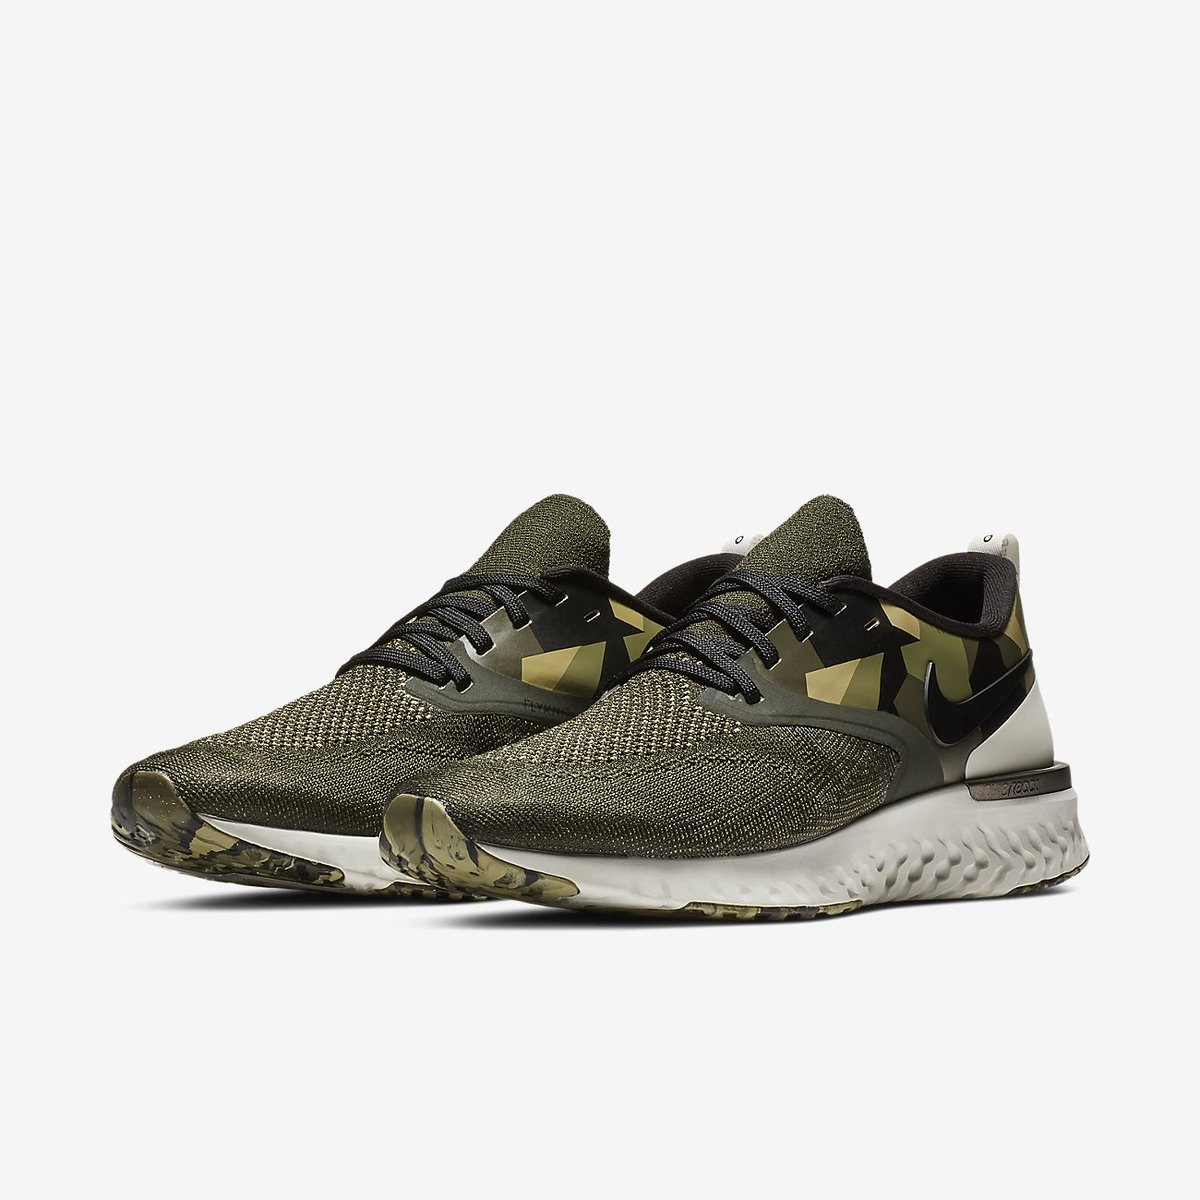 2107a8ca3f Ad: NEW Nike styles dressed in Camo are now available at Nikestore! Odyssey  React 2 http://bit.ly/2GbLy5u Free RN 2018 http://bit.ly/2GfLjGv Zoom  Pegasus 35 ...